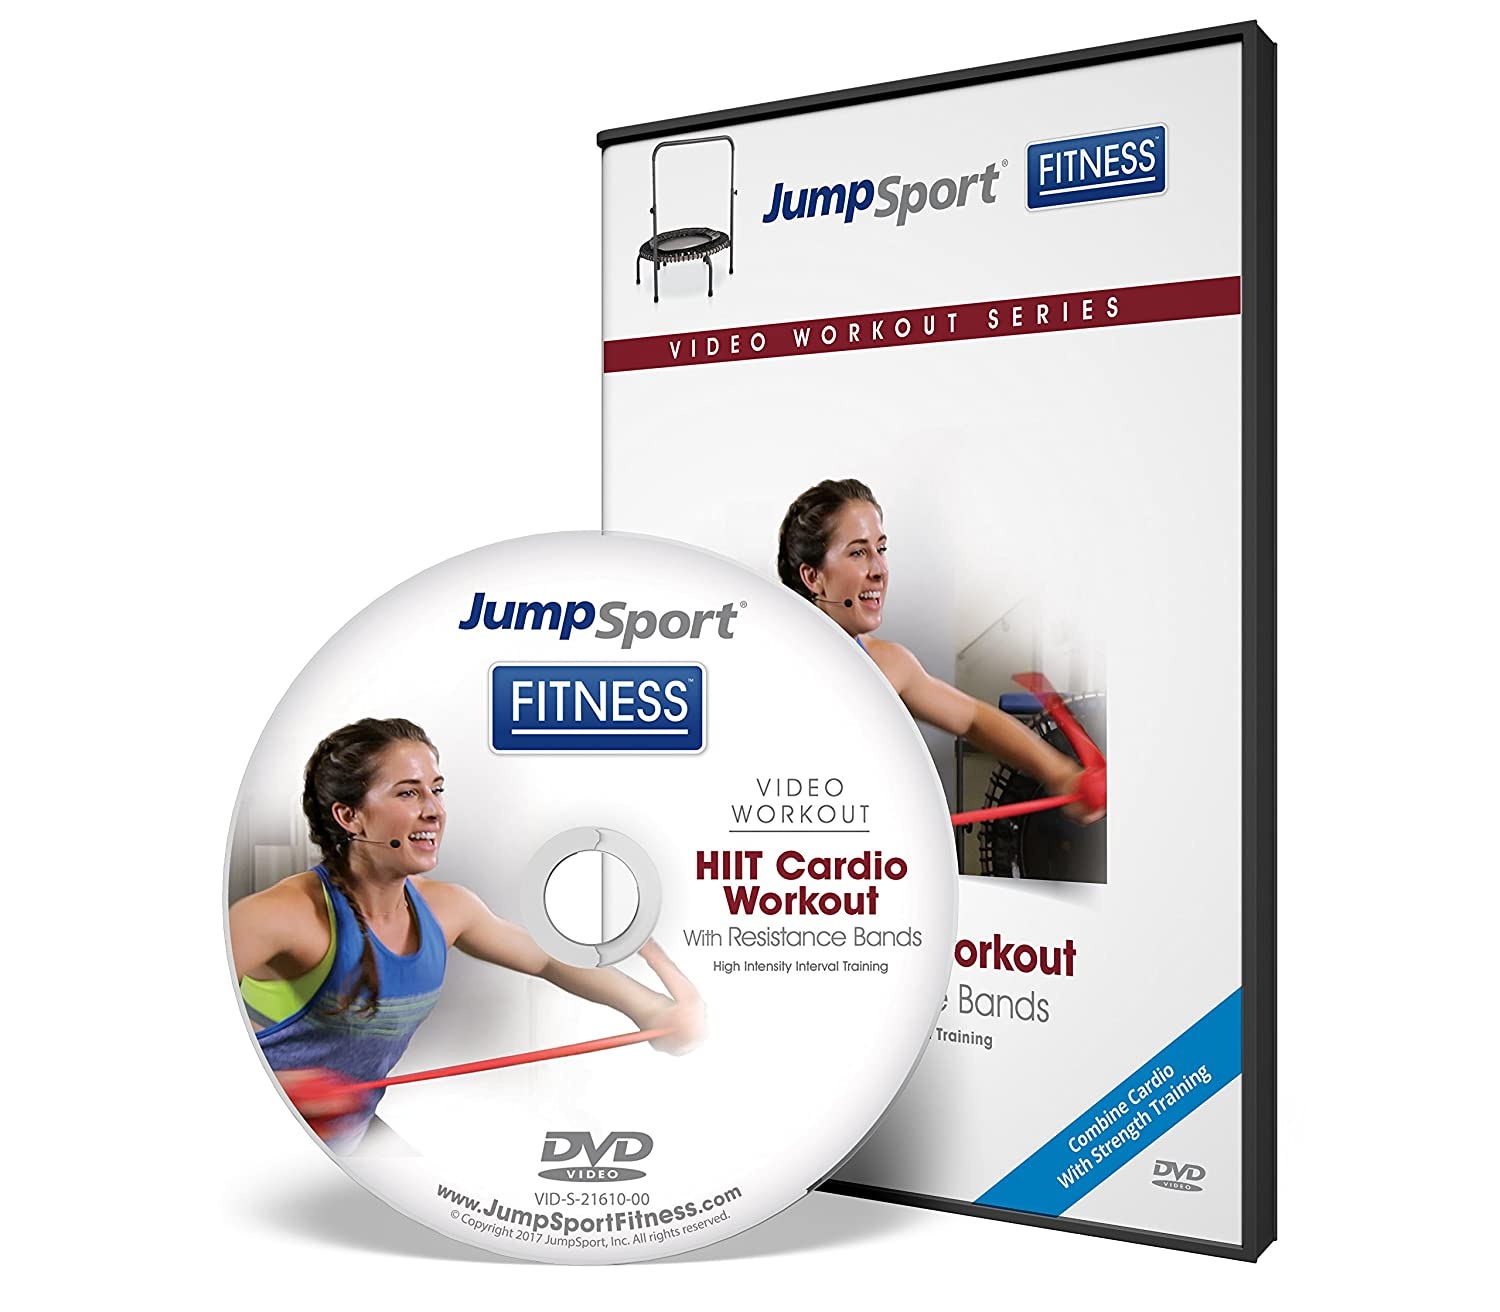 JumpSport Fitness Trampoline Workout DVDs | Cardio Focused | Resistance Bands and Handle Bar Options Available VID-S-21473-00